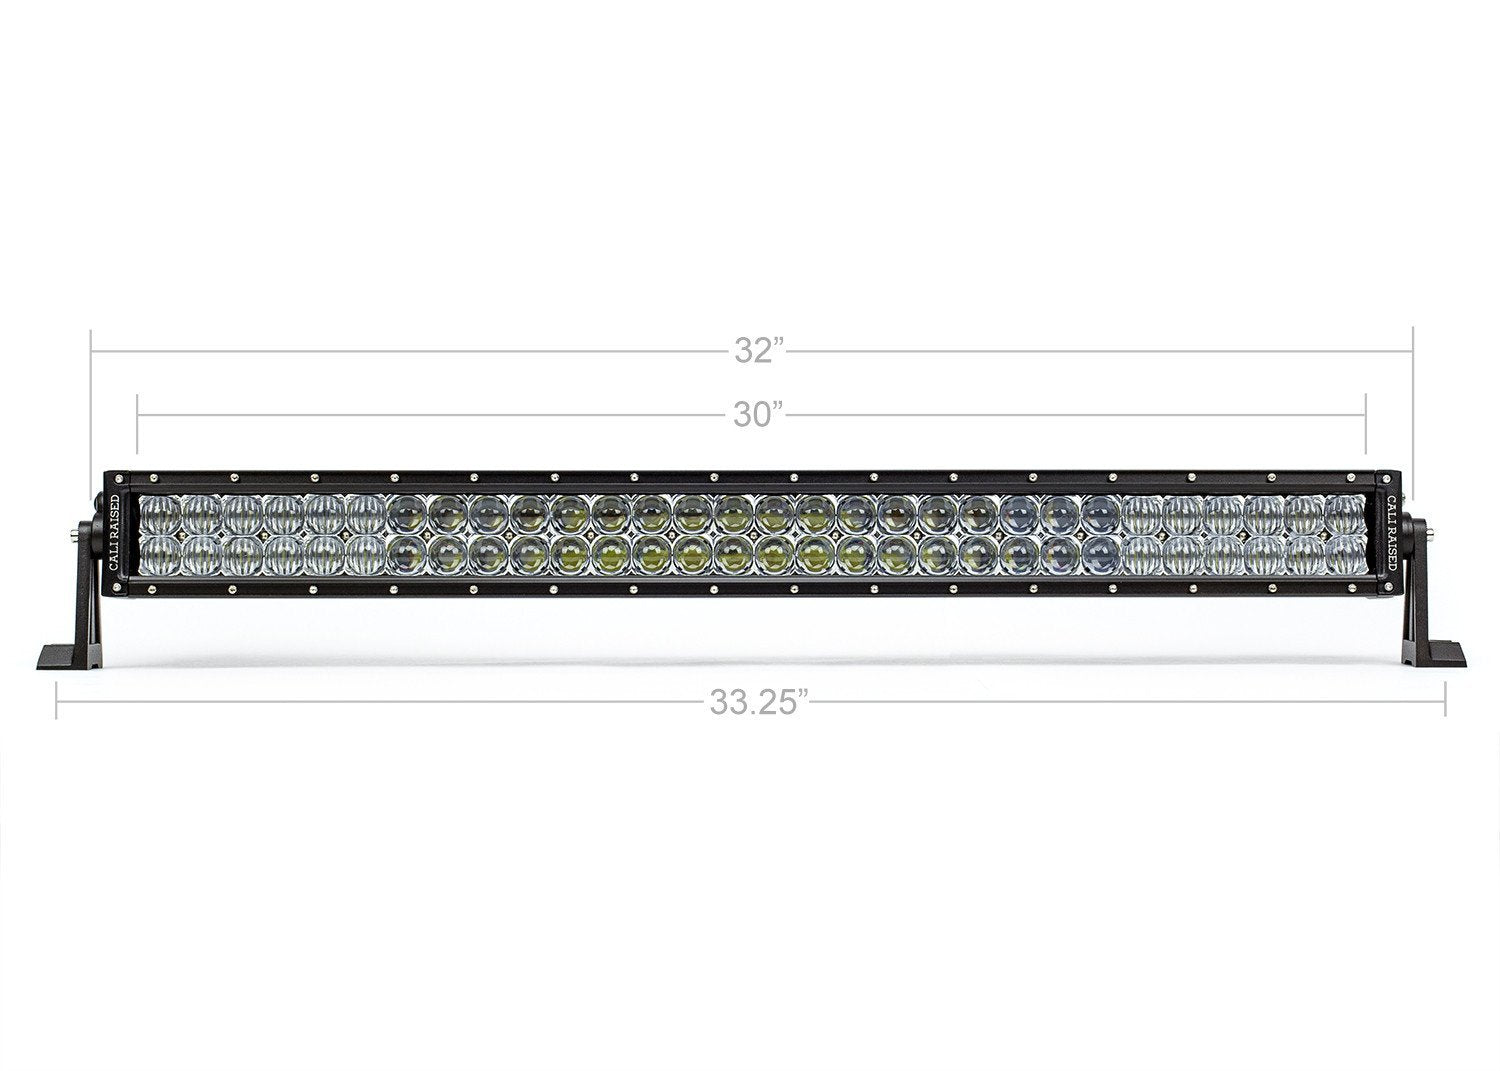 "32"" LOWER BUMPER FLUSH LED LIGHT BAR COMBO - TOYOTA 4RUNNER 4TH GEN 2003-2009"